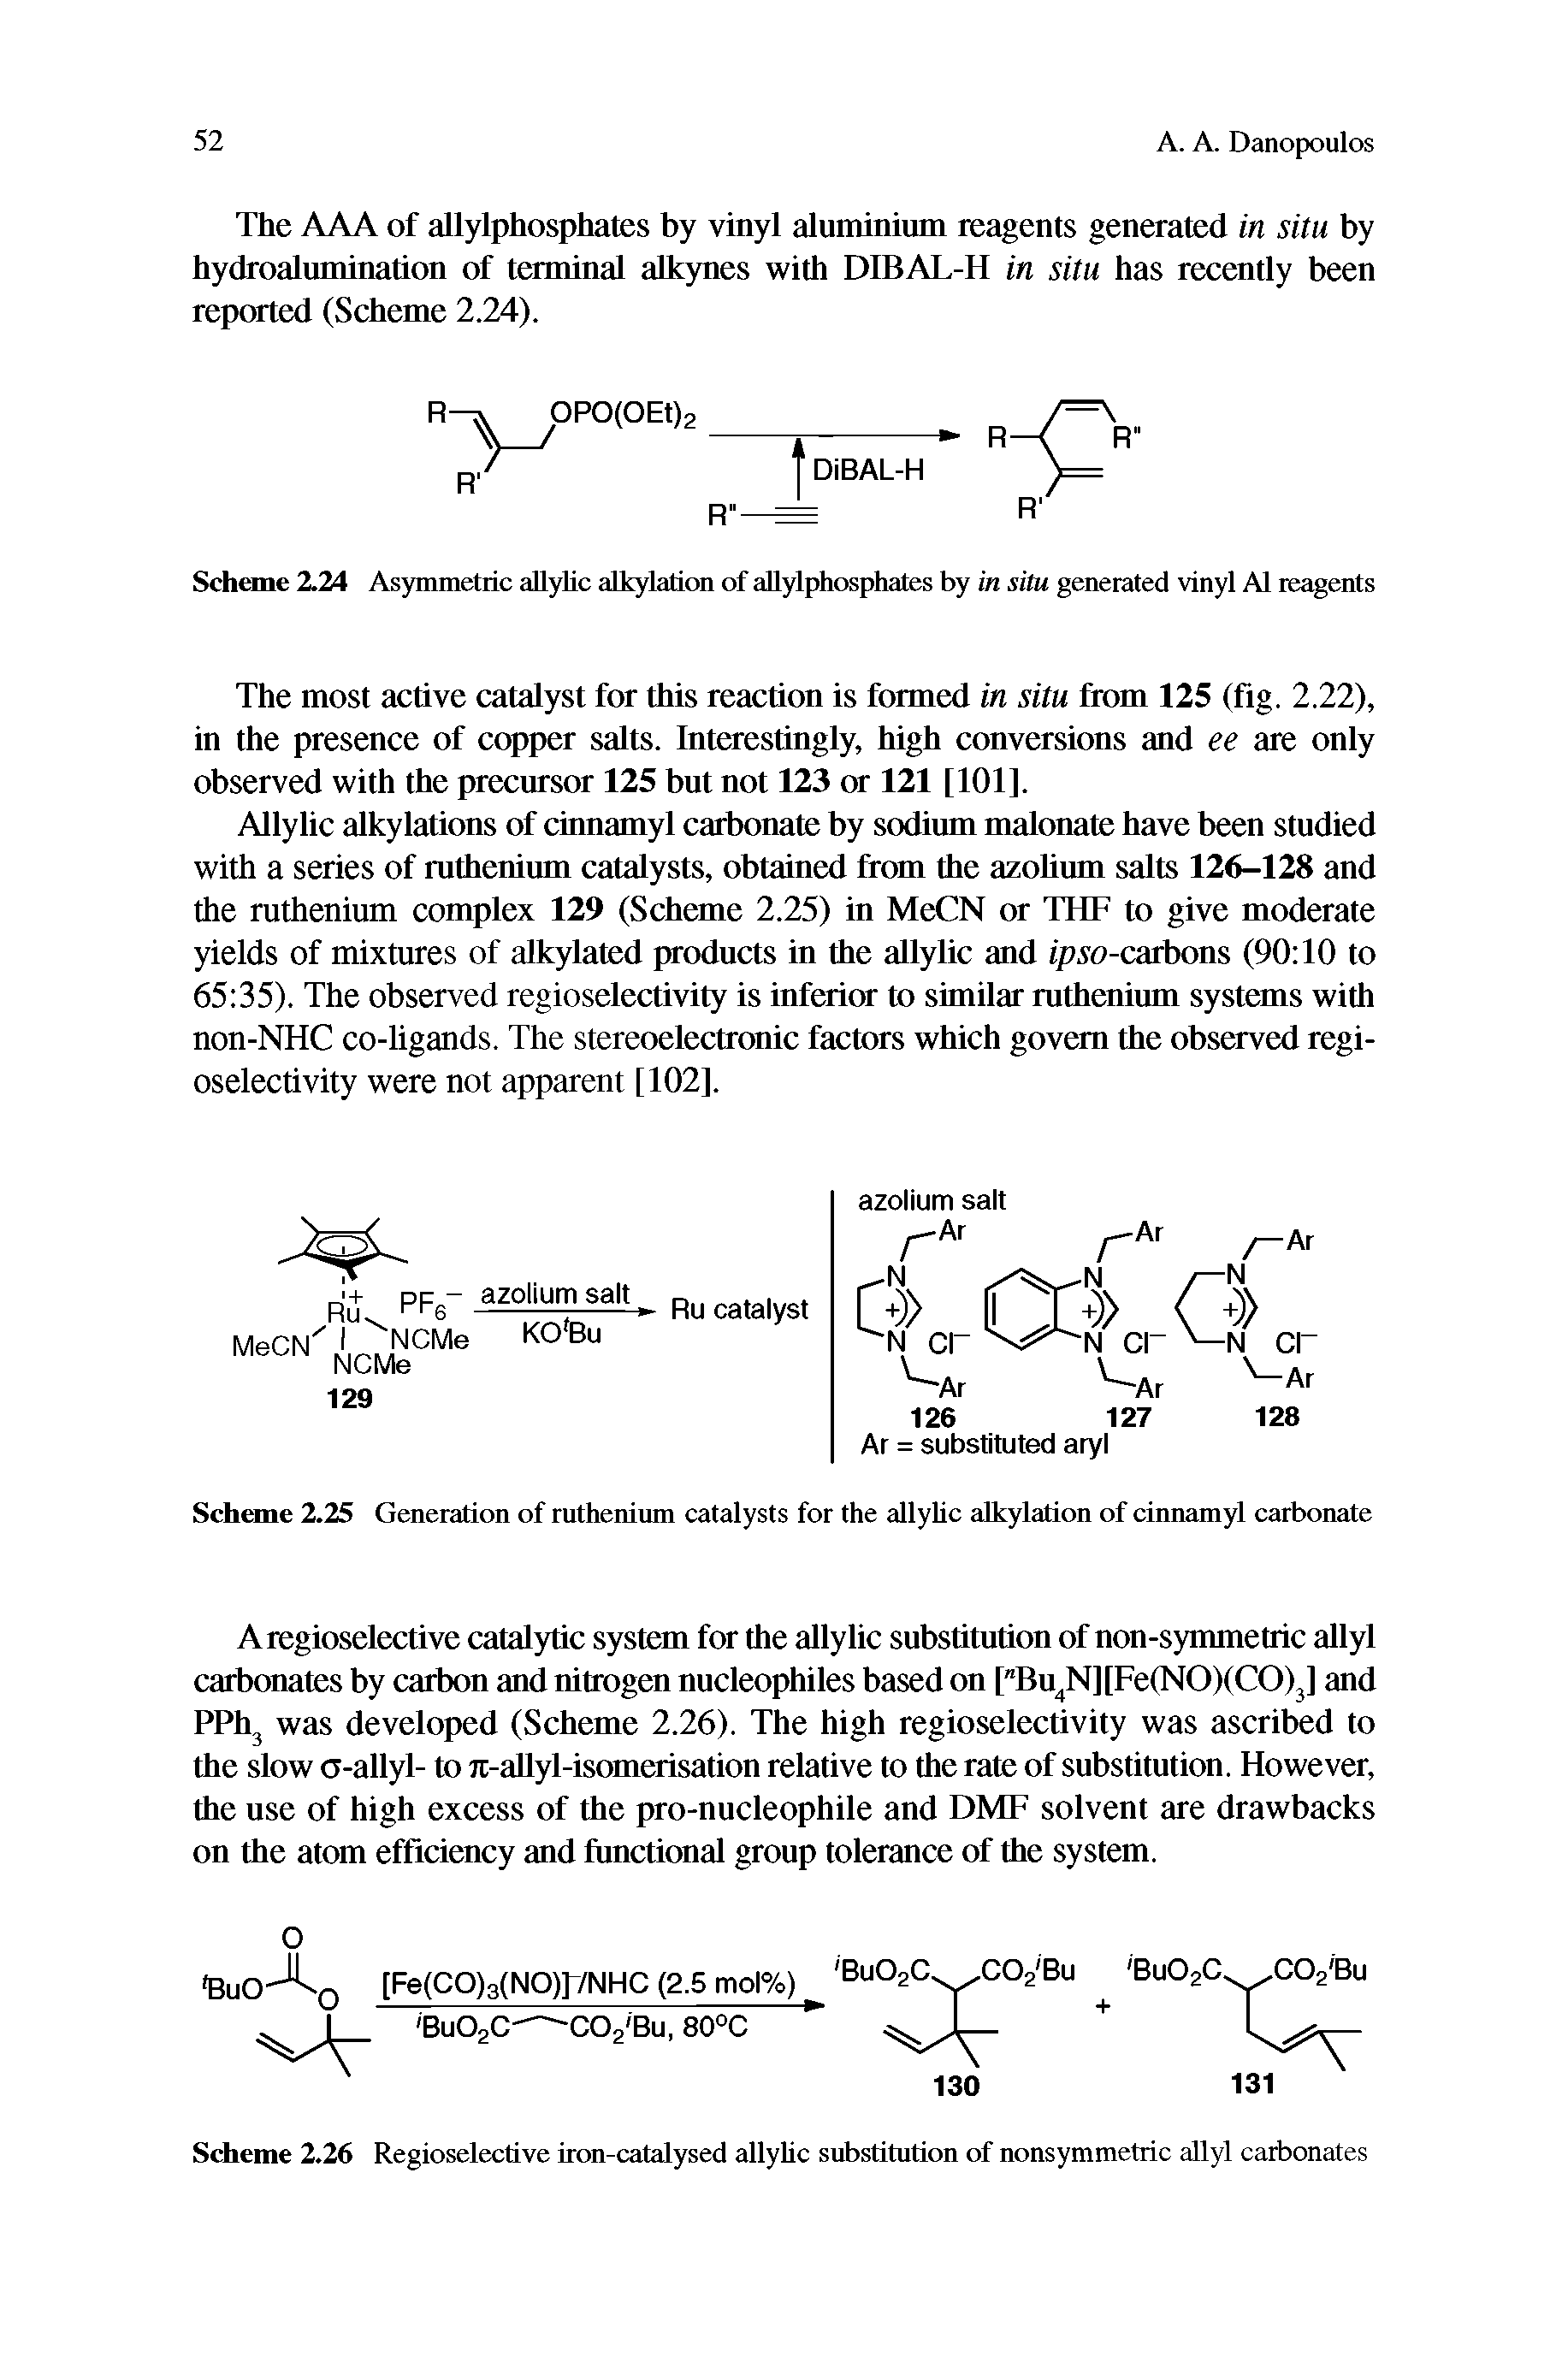 Scheme 2.26 Regioselective iron-catalysed allyhc substitution of nonsymmetric allyl carbonates